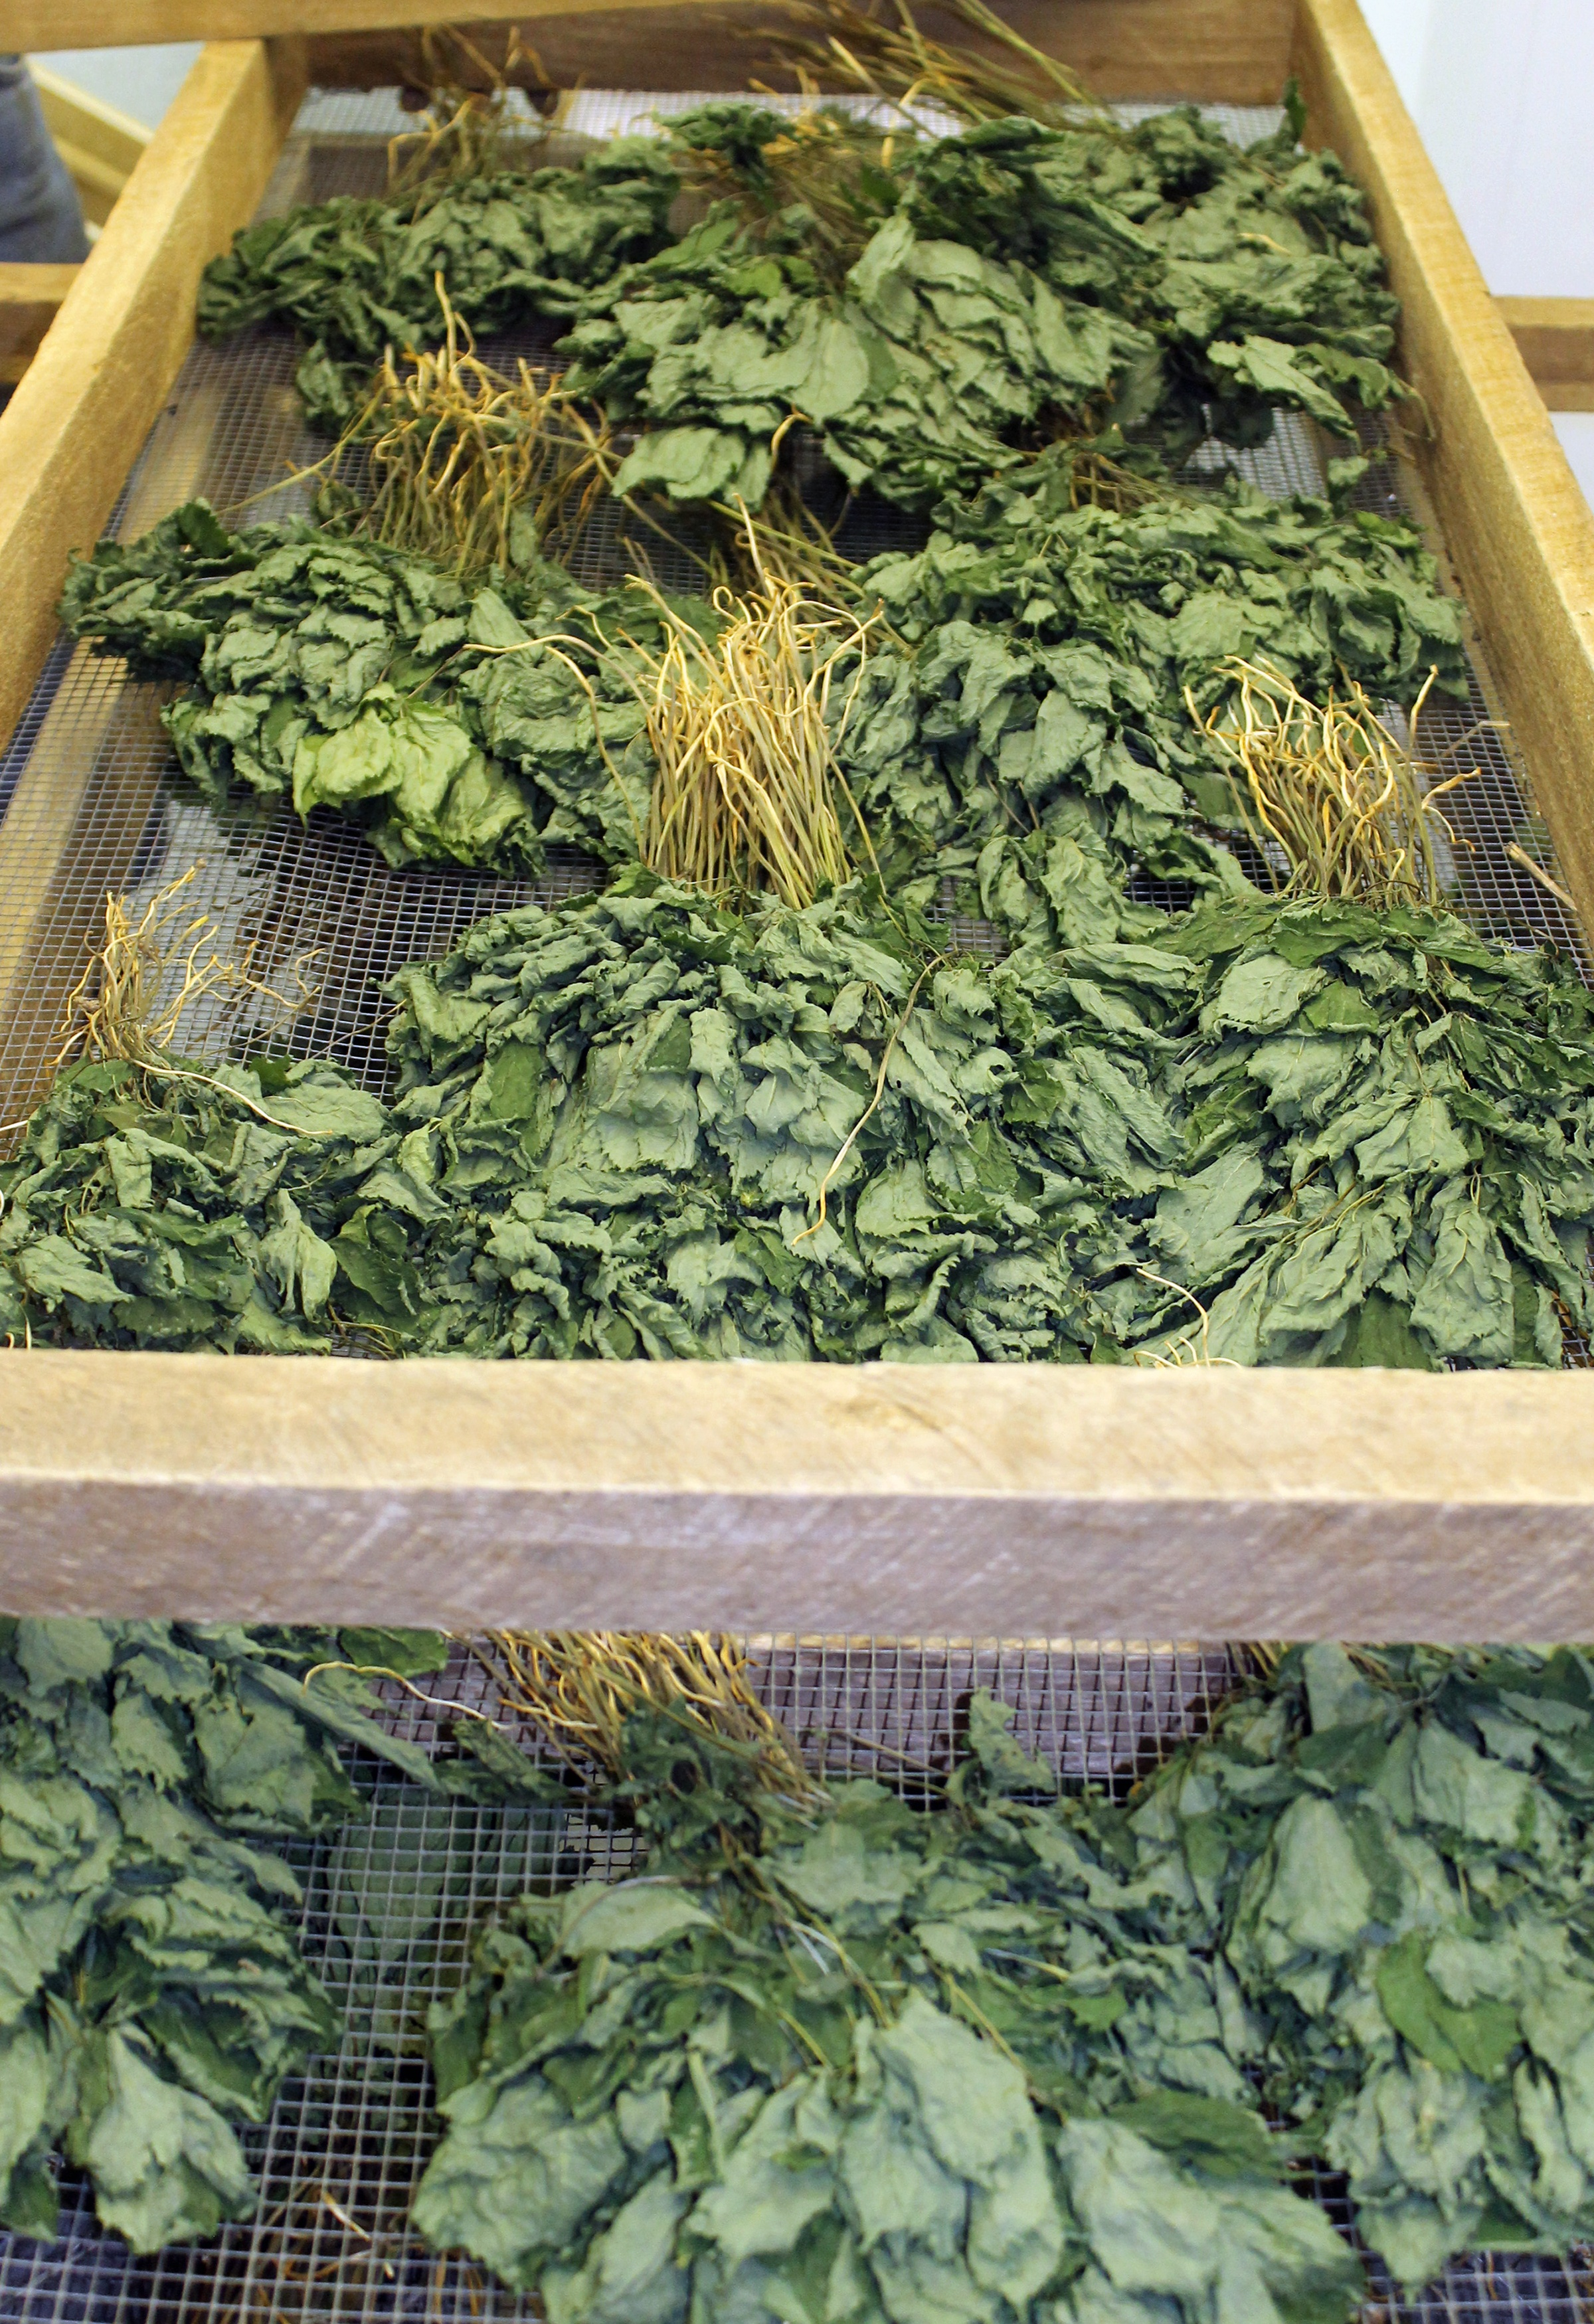 Forest-grown American ginseng leaves drying after harvest on wooden bed